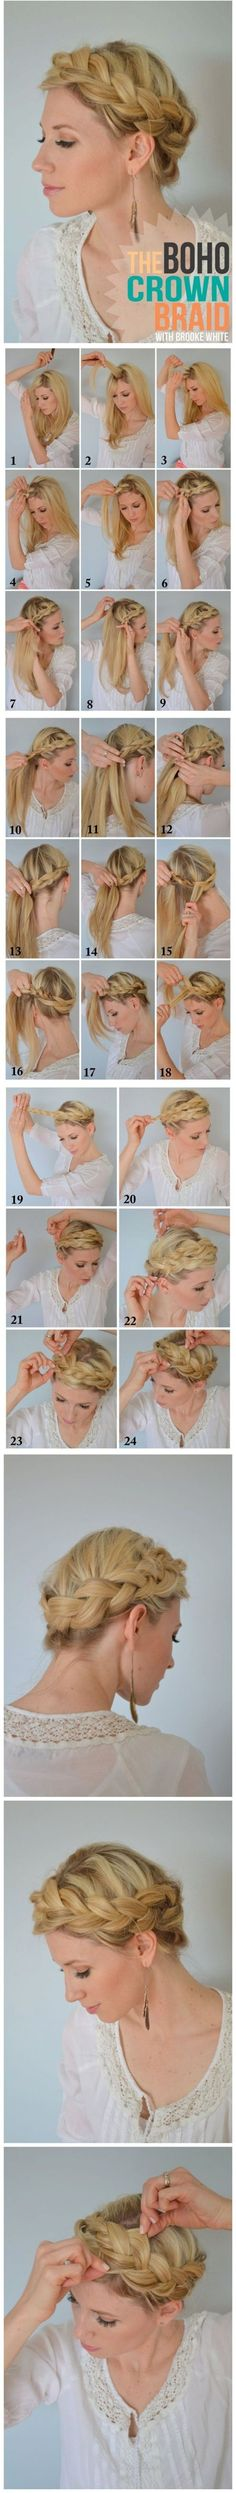 37 #Stunning Braided #Crown Hairstyles for #Every Occasion ...